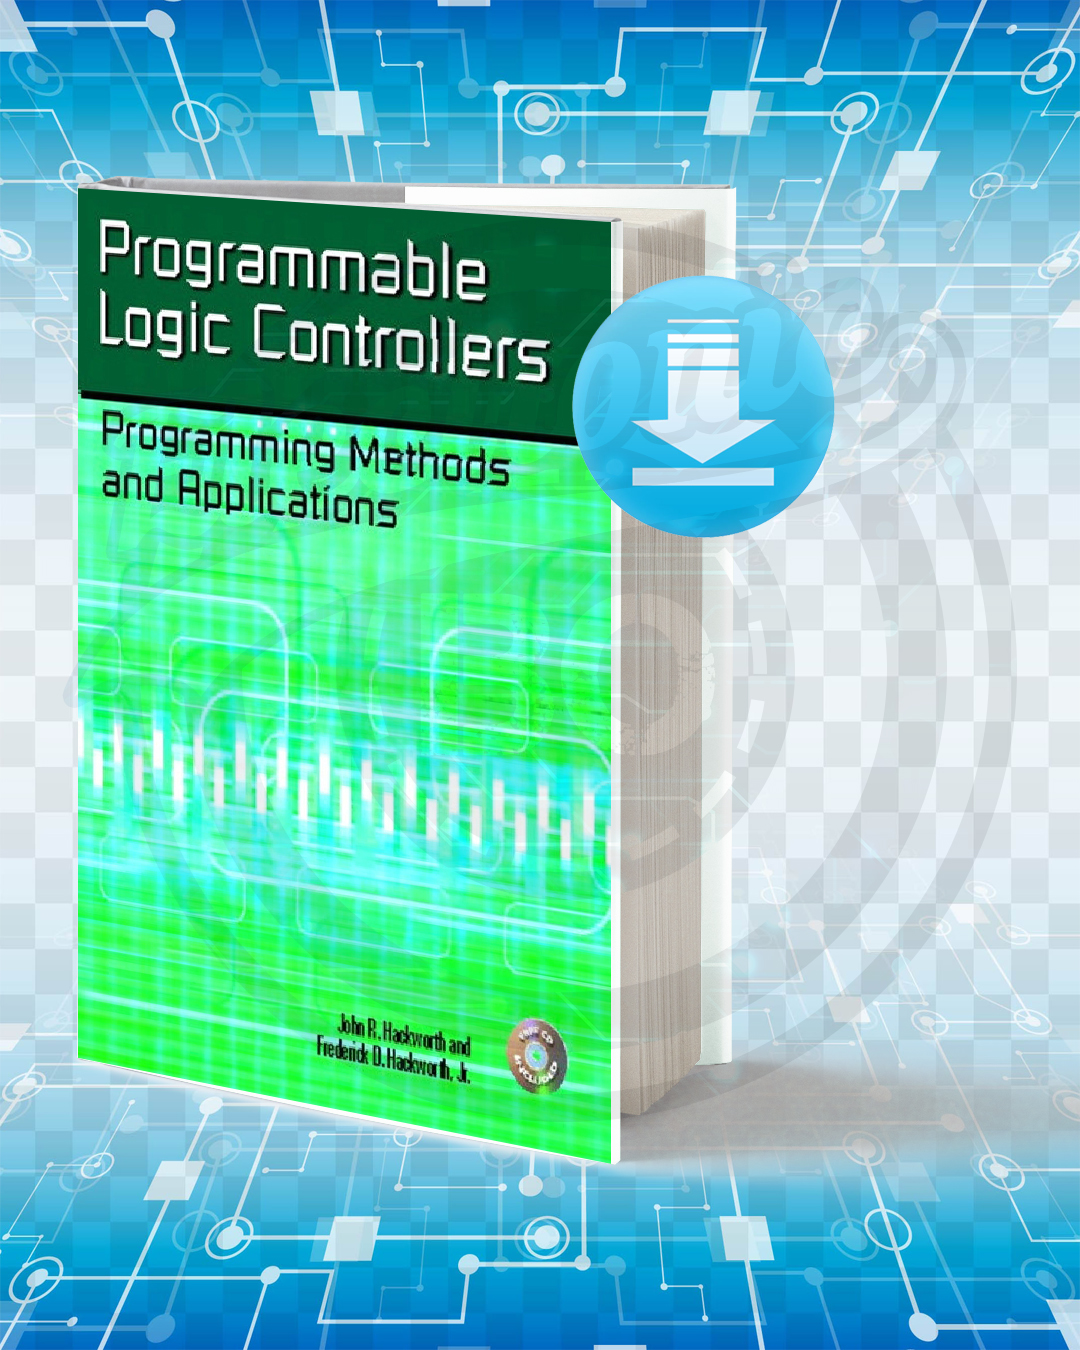 programmable logic controllers programming methods and applications pdf